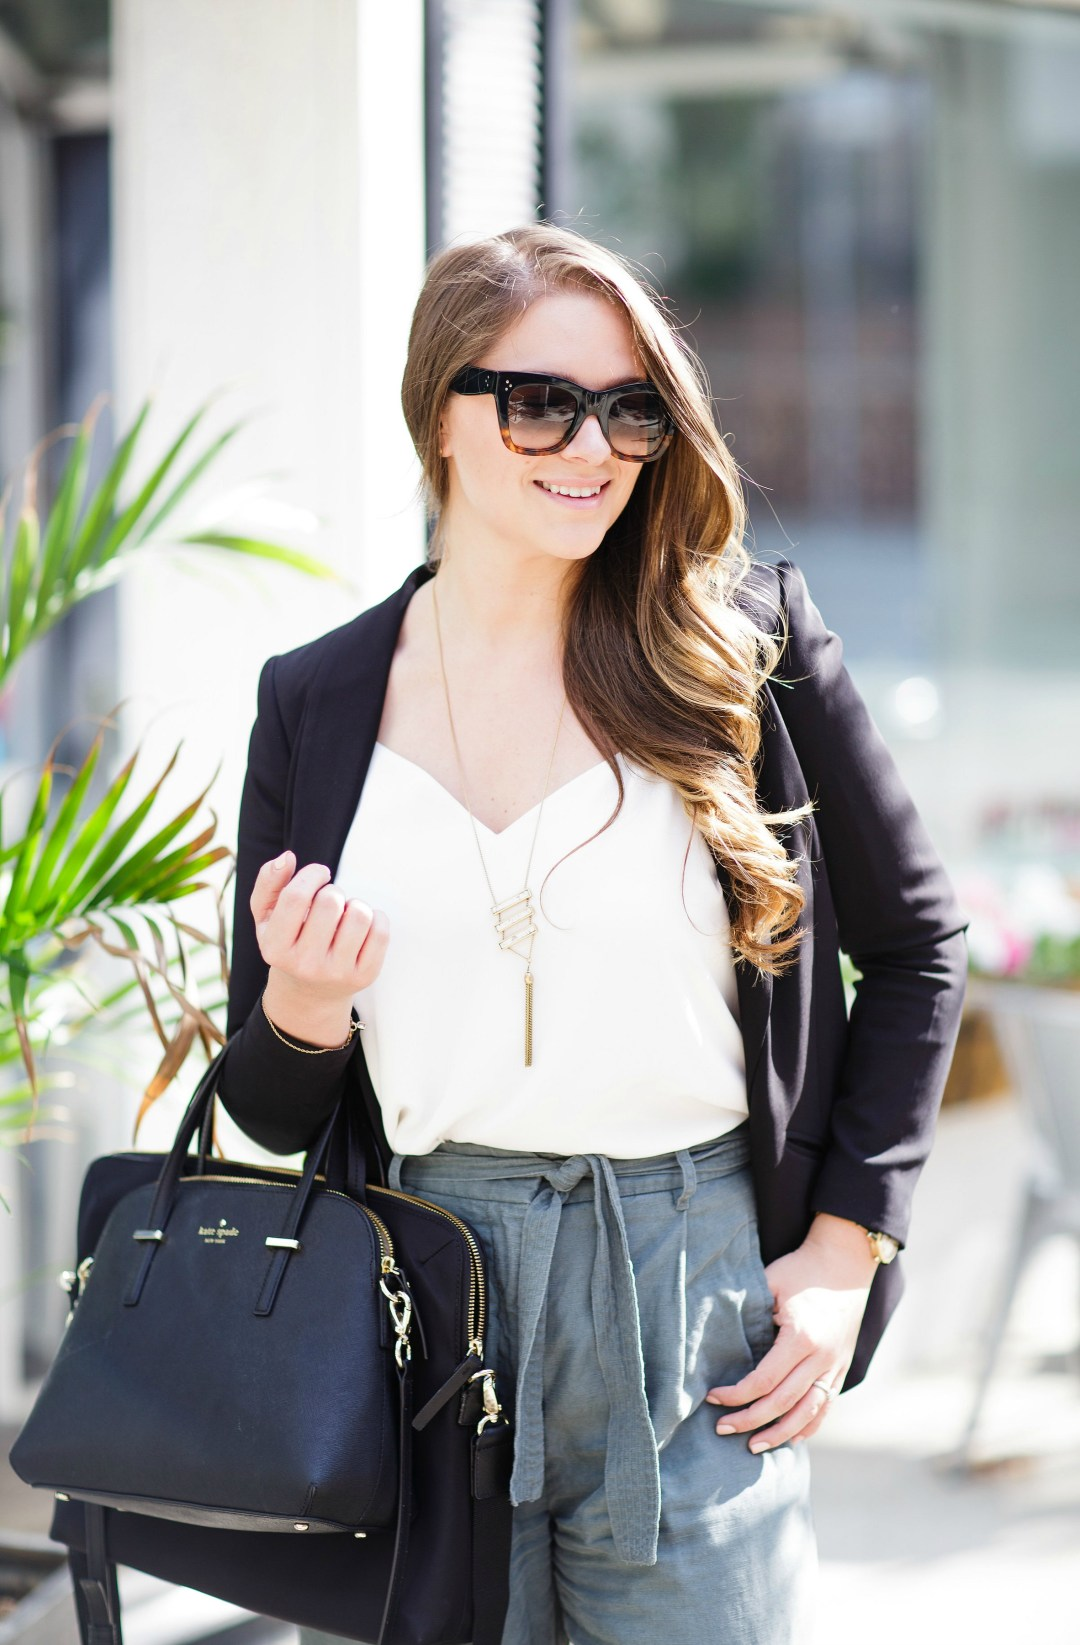 working-girl-office-outfit-wide-leg-pants-black-blazer-celine-sunglasses-kate-spade-laptop-bag-rosecitystyleguide-canadian-blogger-15